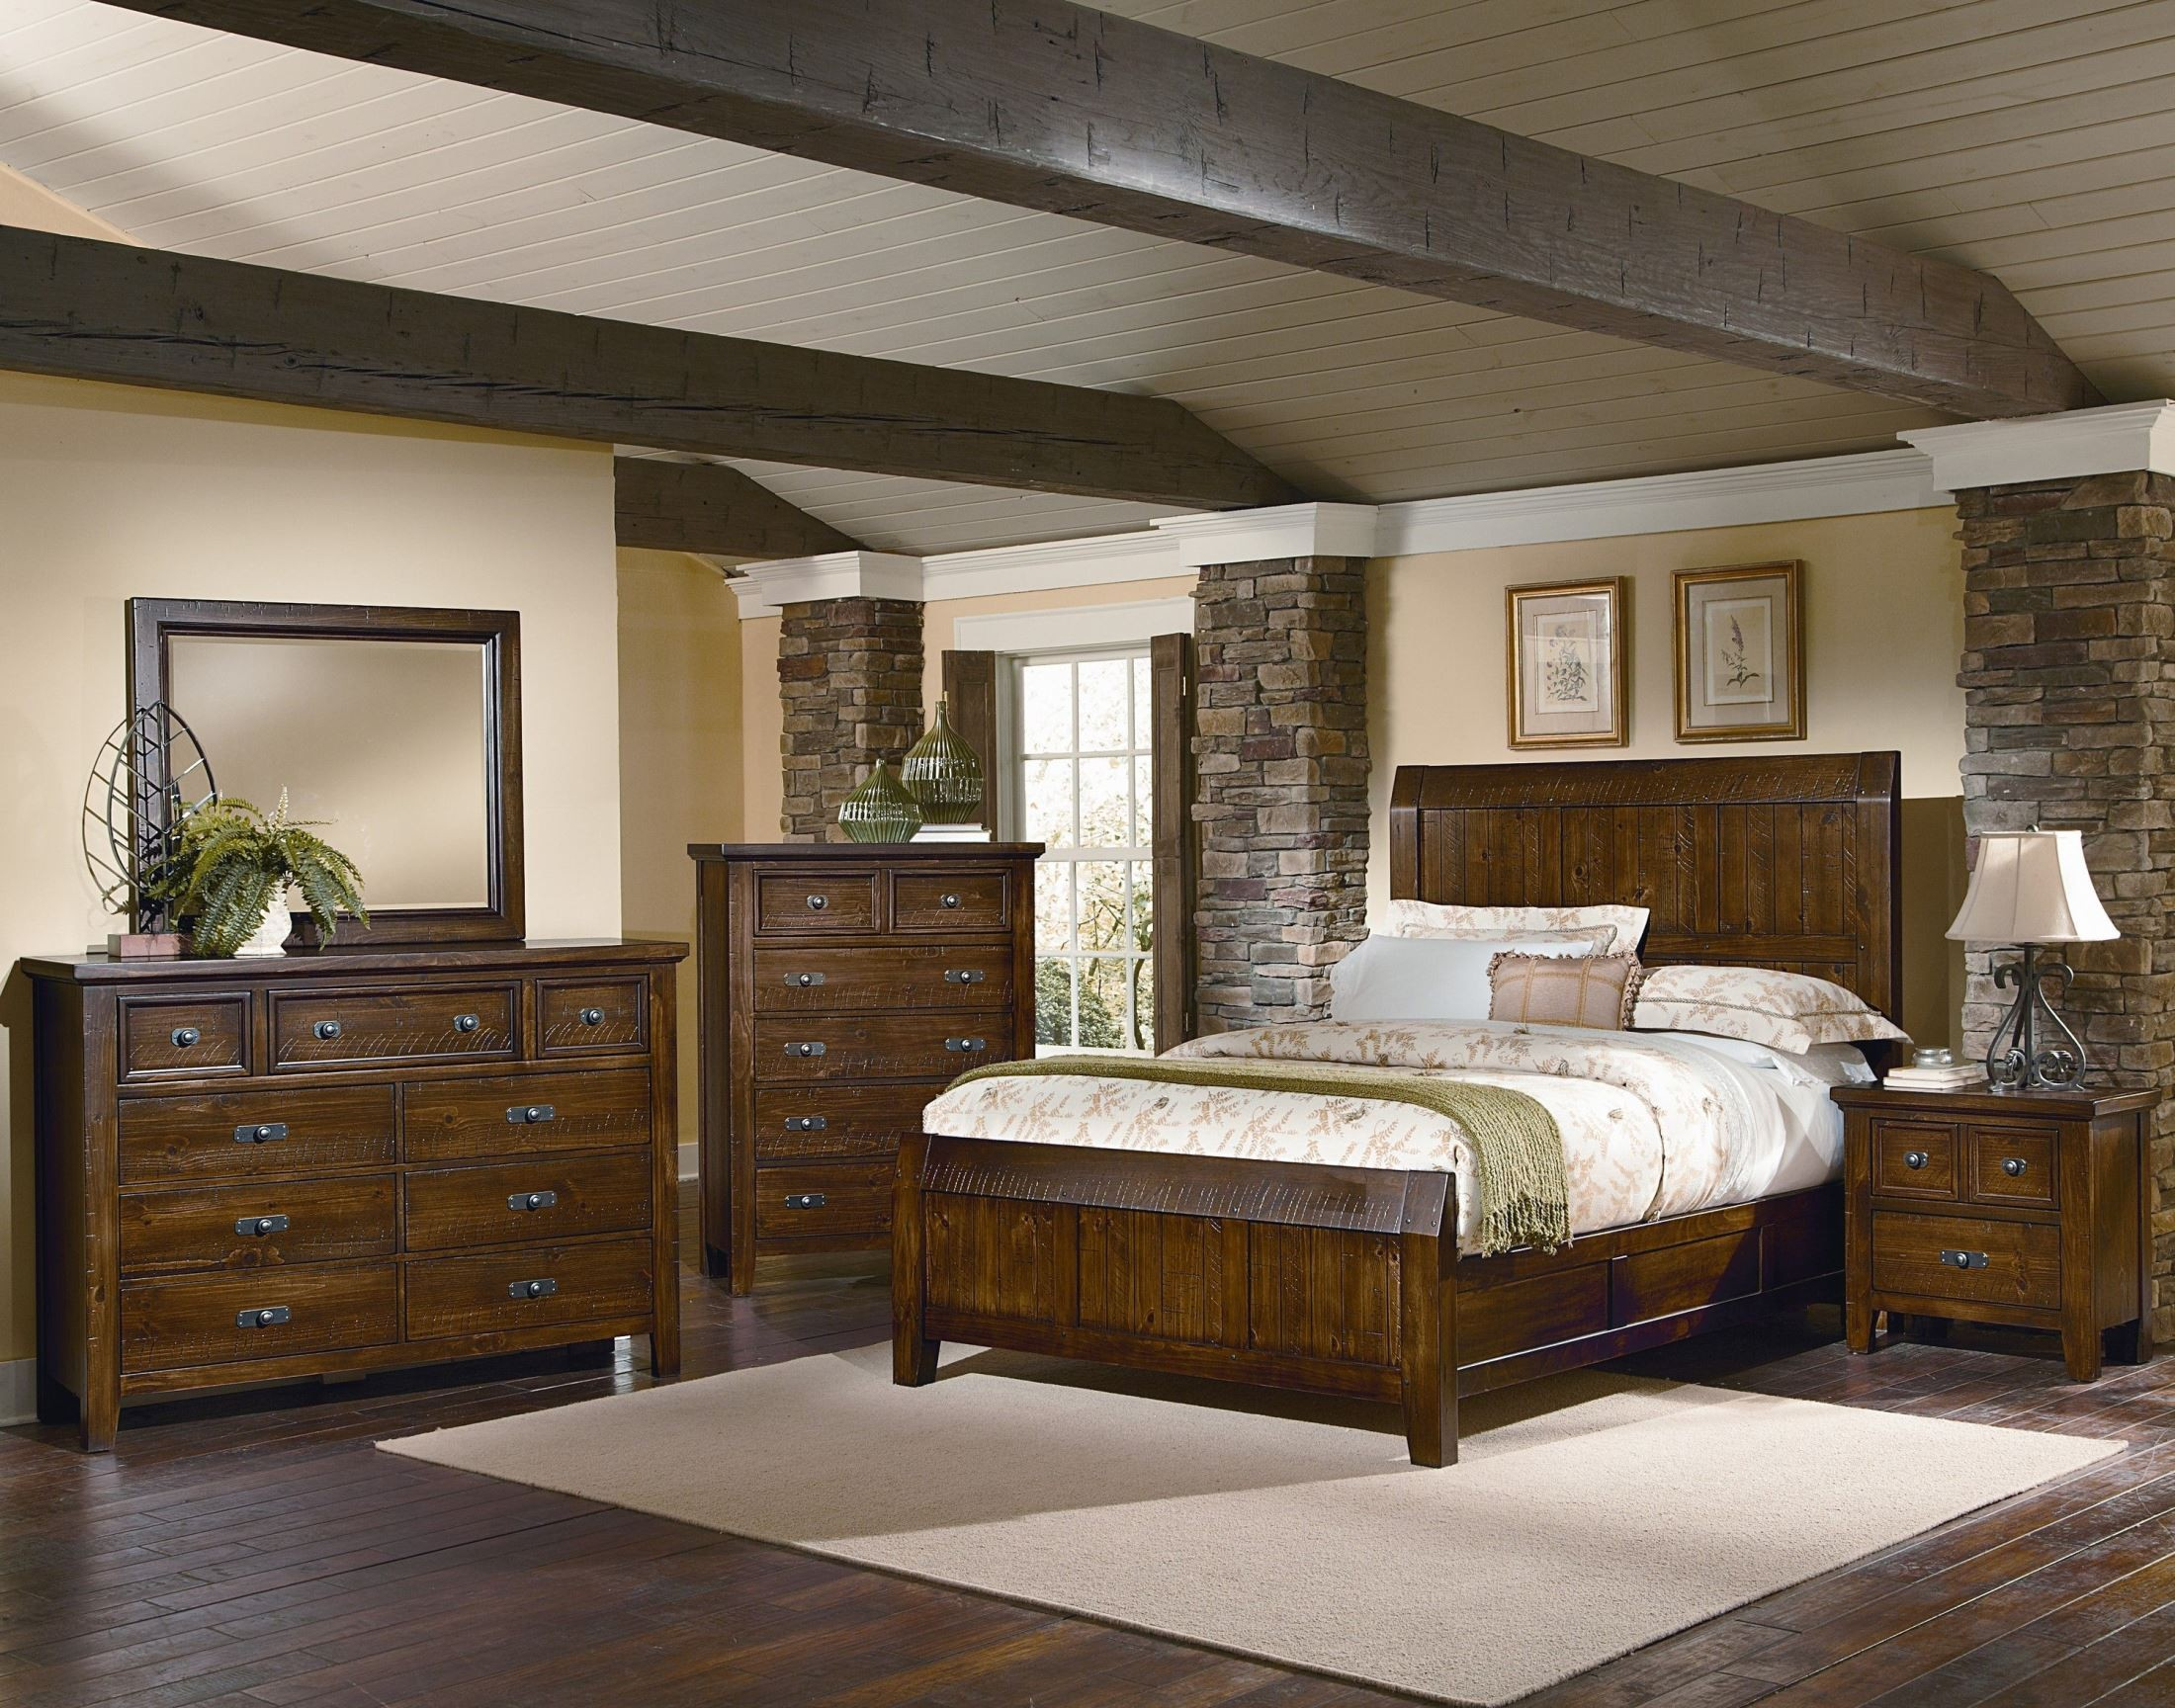 Bedroom Furniture Bedroom Sets Timber Mill Pine Timber Bedroom Set